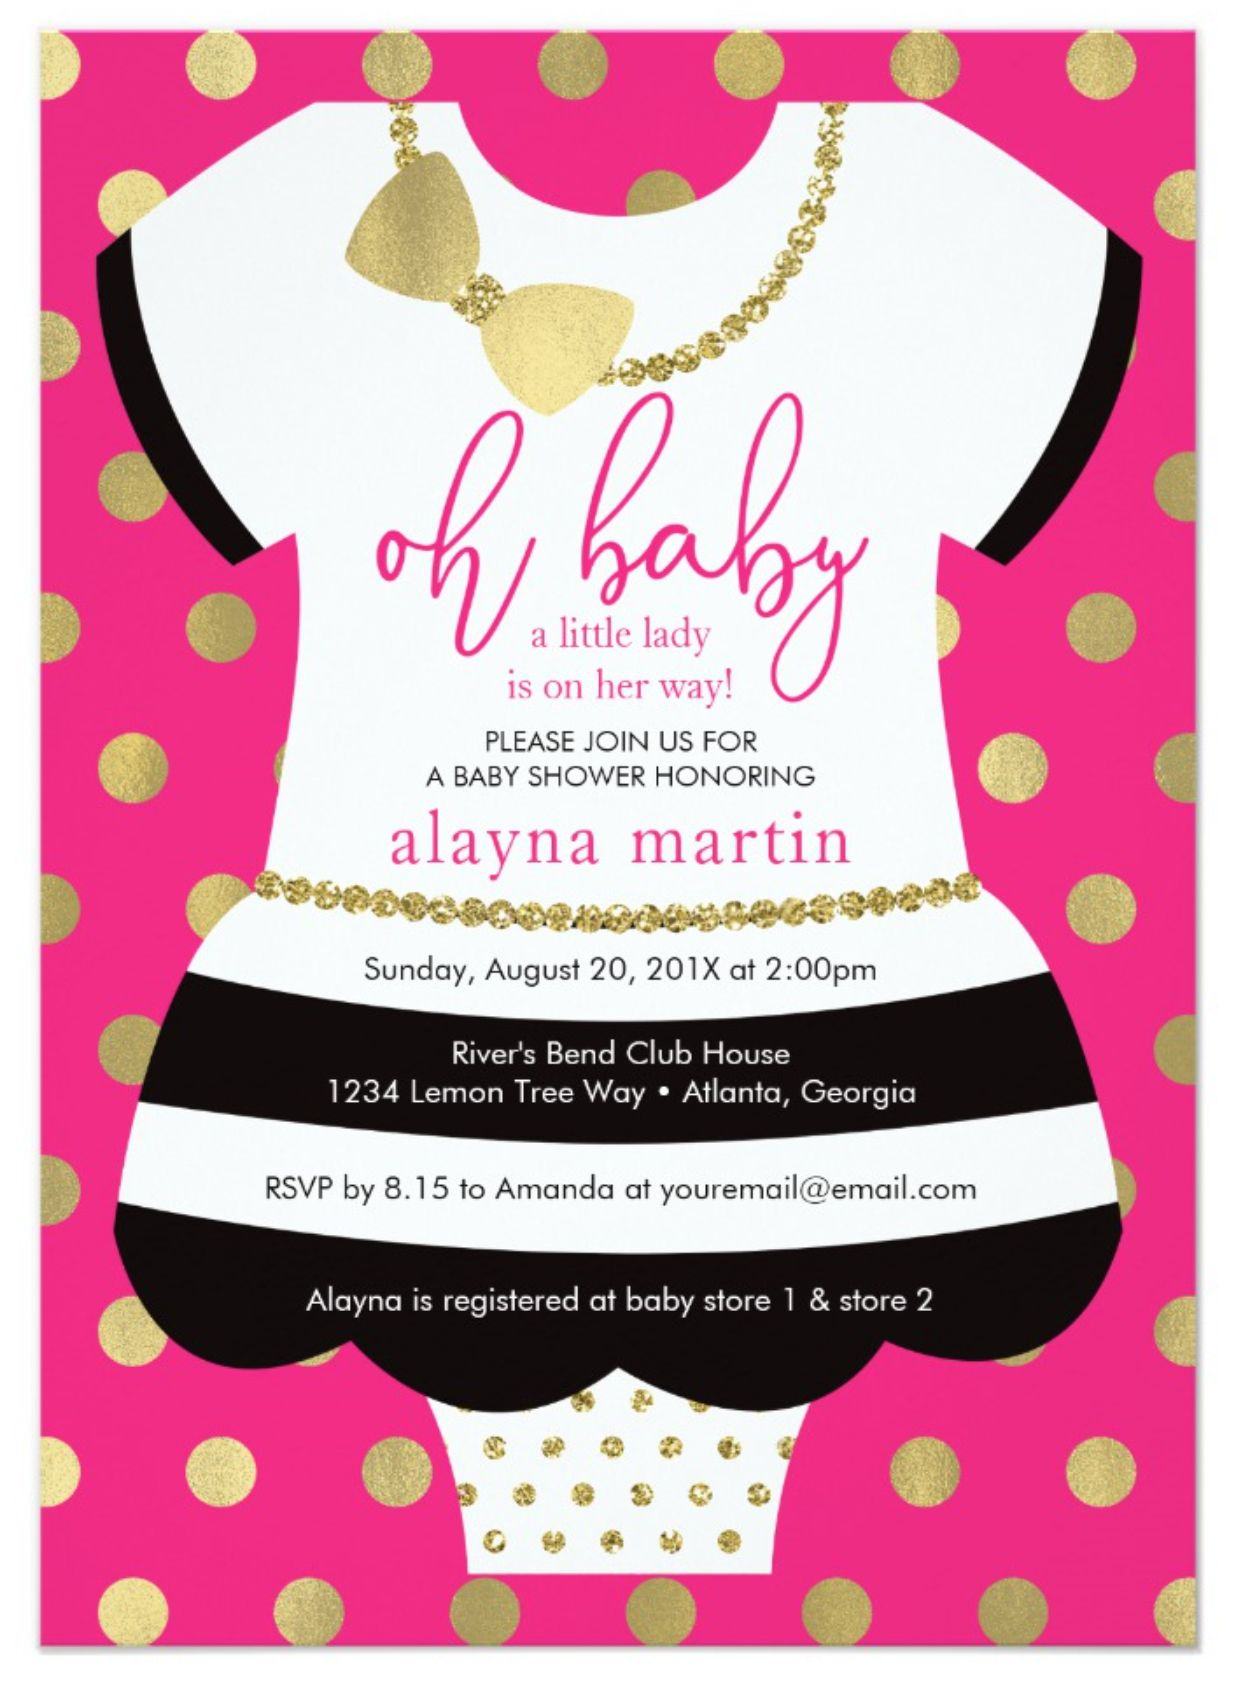 Kate Spade Baby Shower Idea Oh baby a little lady is on her way